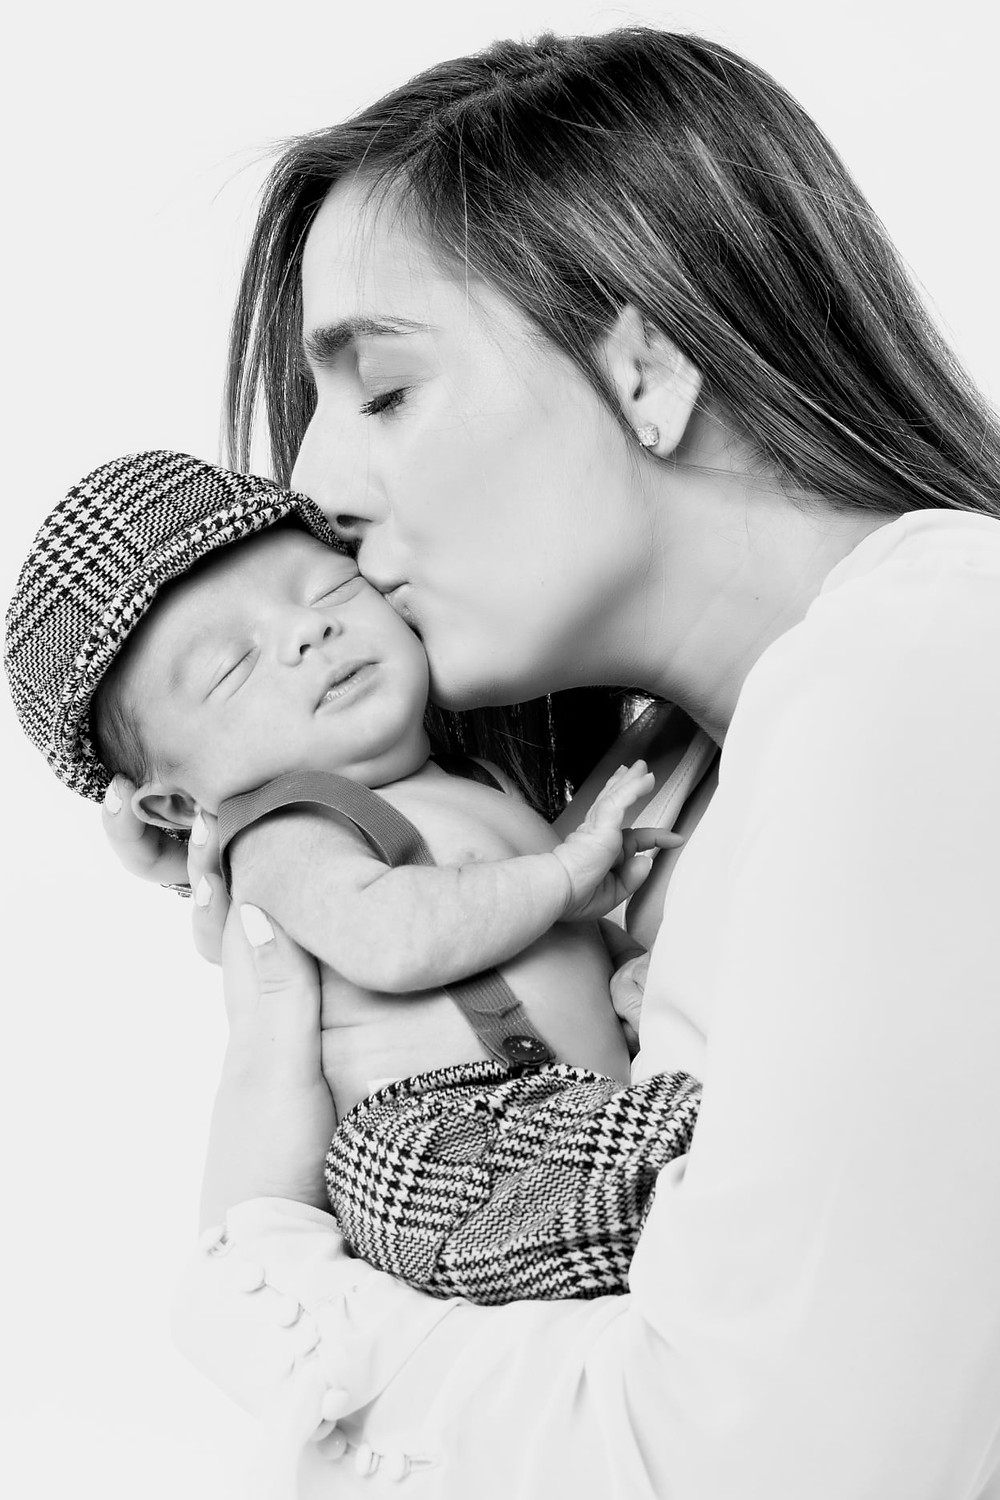 A beautiful memory between you and your baby that will last a lifetime! Our modern and comfortable studio located in Manhattan, NYC will cater to all your photoshoot needs! Keep those cherishable moments forever with the help of our highly experienced photographer and the team at Tals Studio.  Give us a call at (646)-300-2216  or visit our website at  https://www.talsstudio.com/newborn Newborn photoshoot just $249